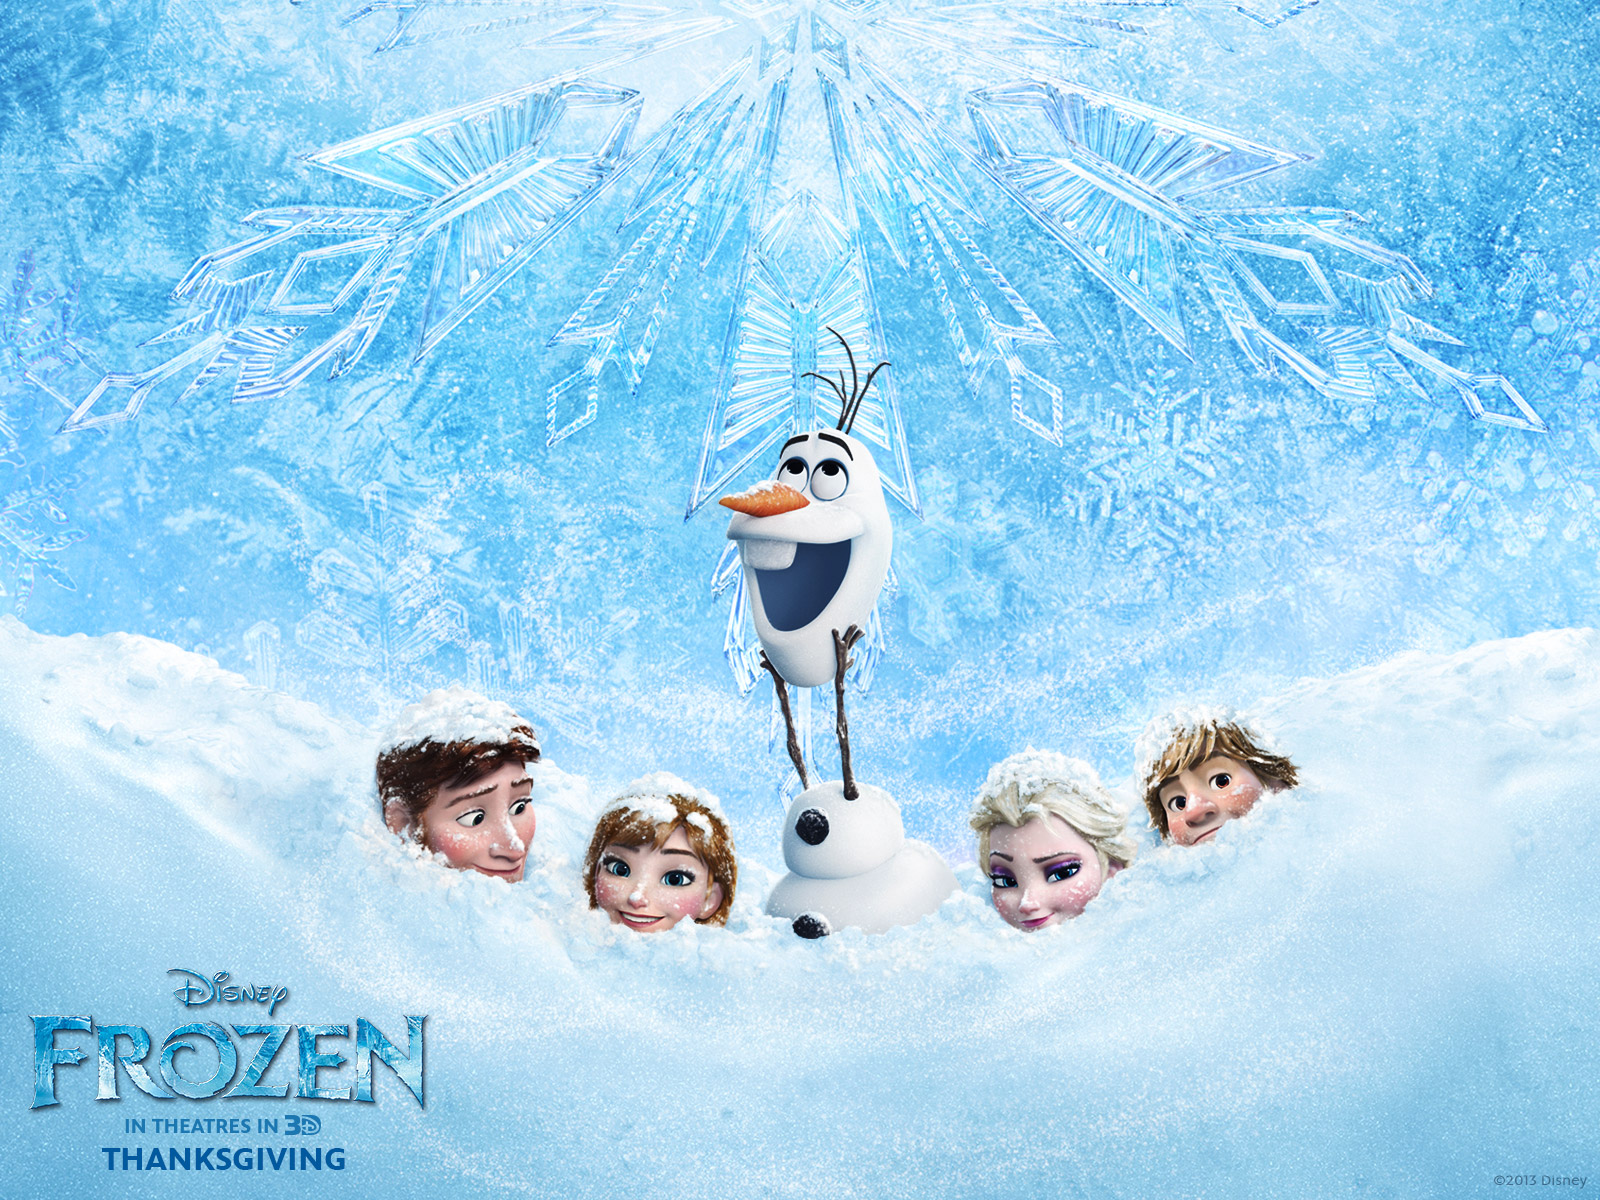 Frozen Wallpapers   Frozen Wallpaper 35894583 1600x1200